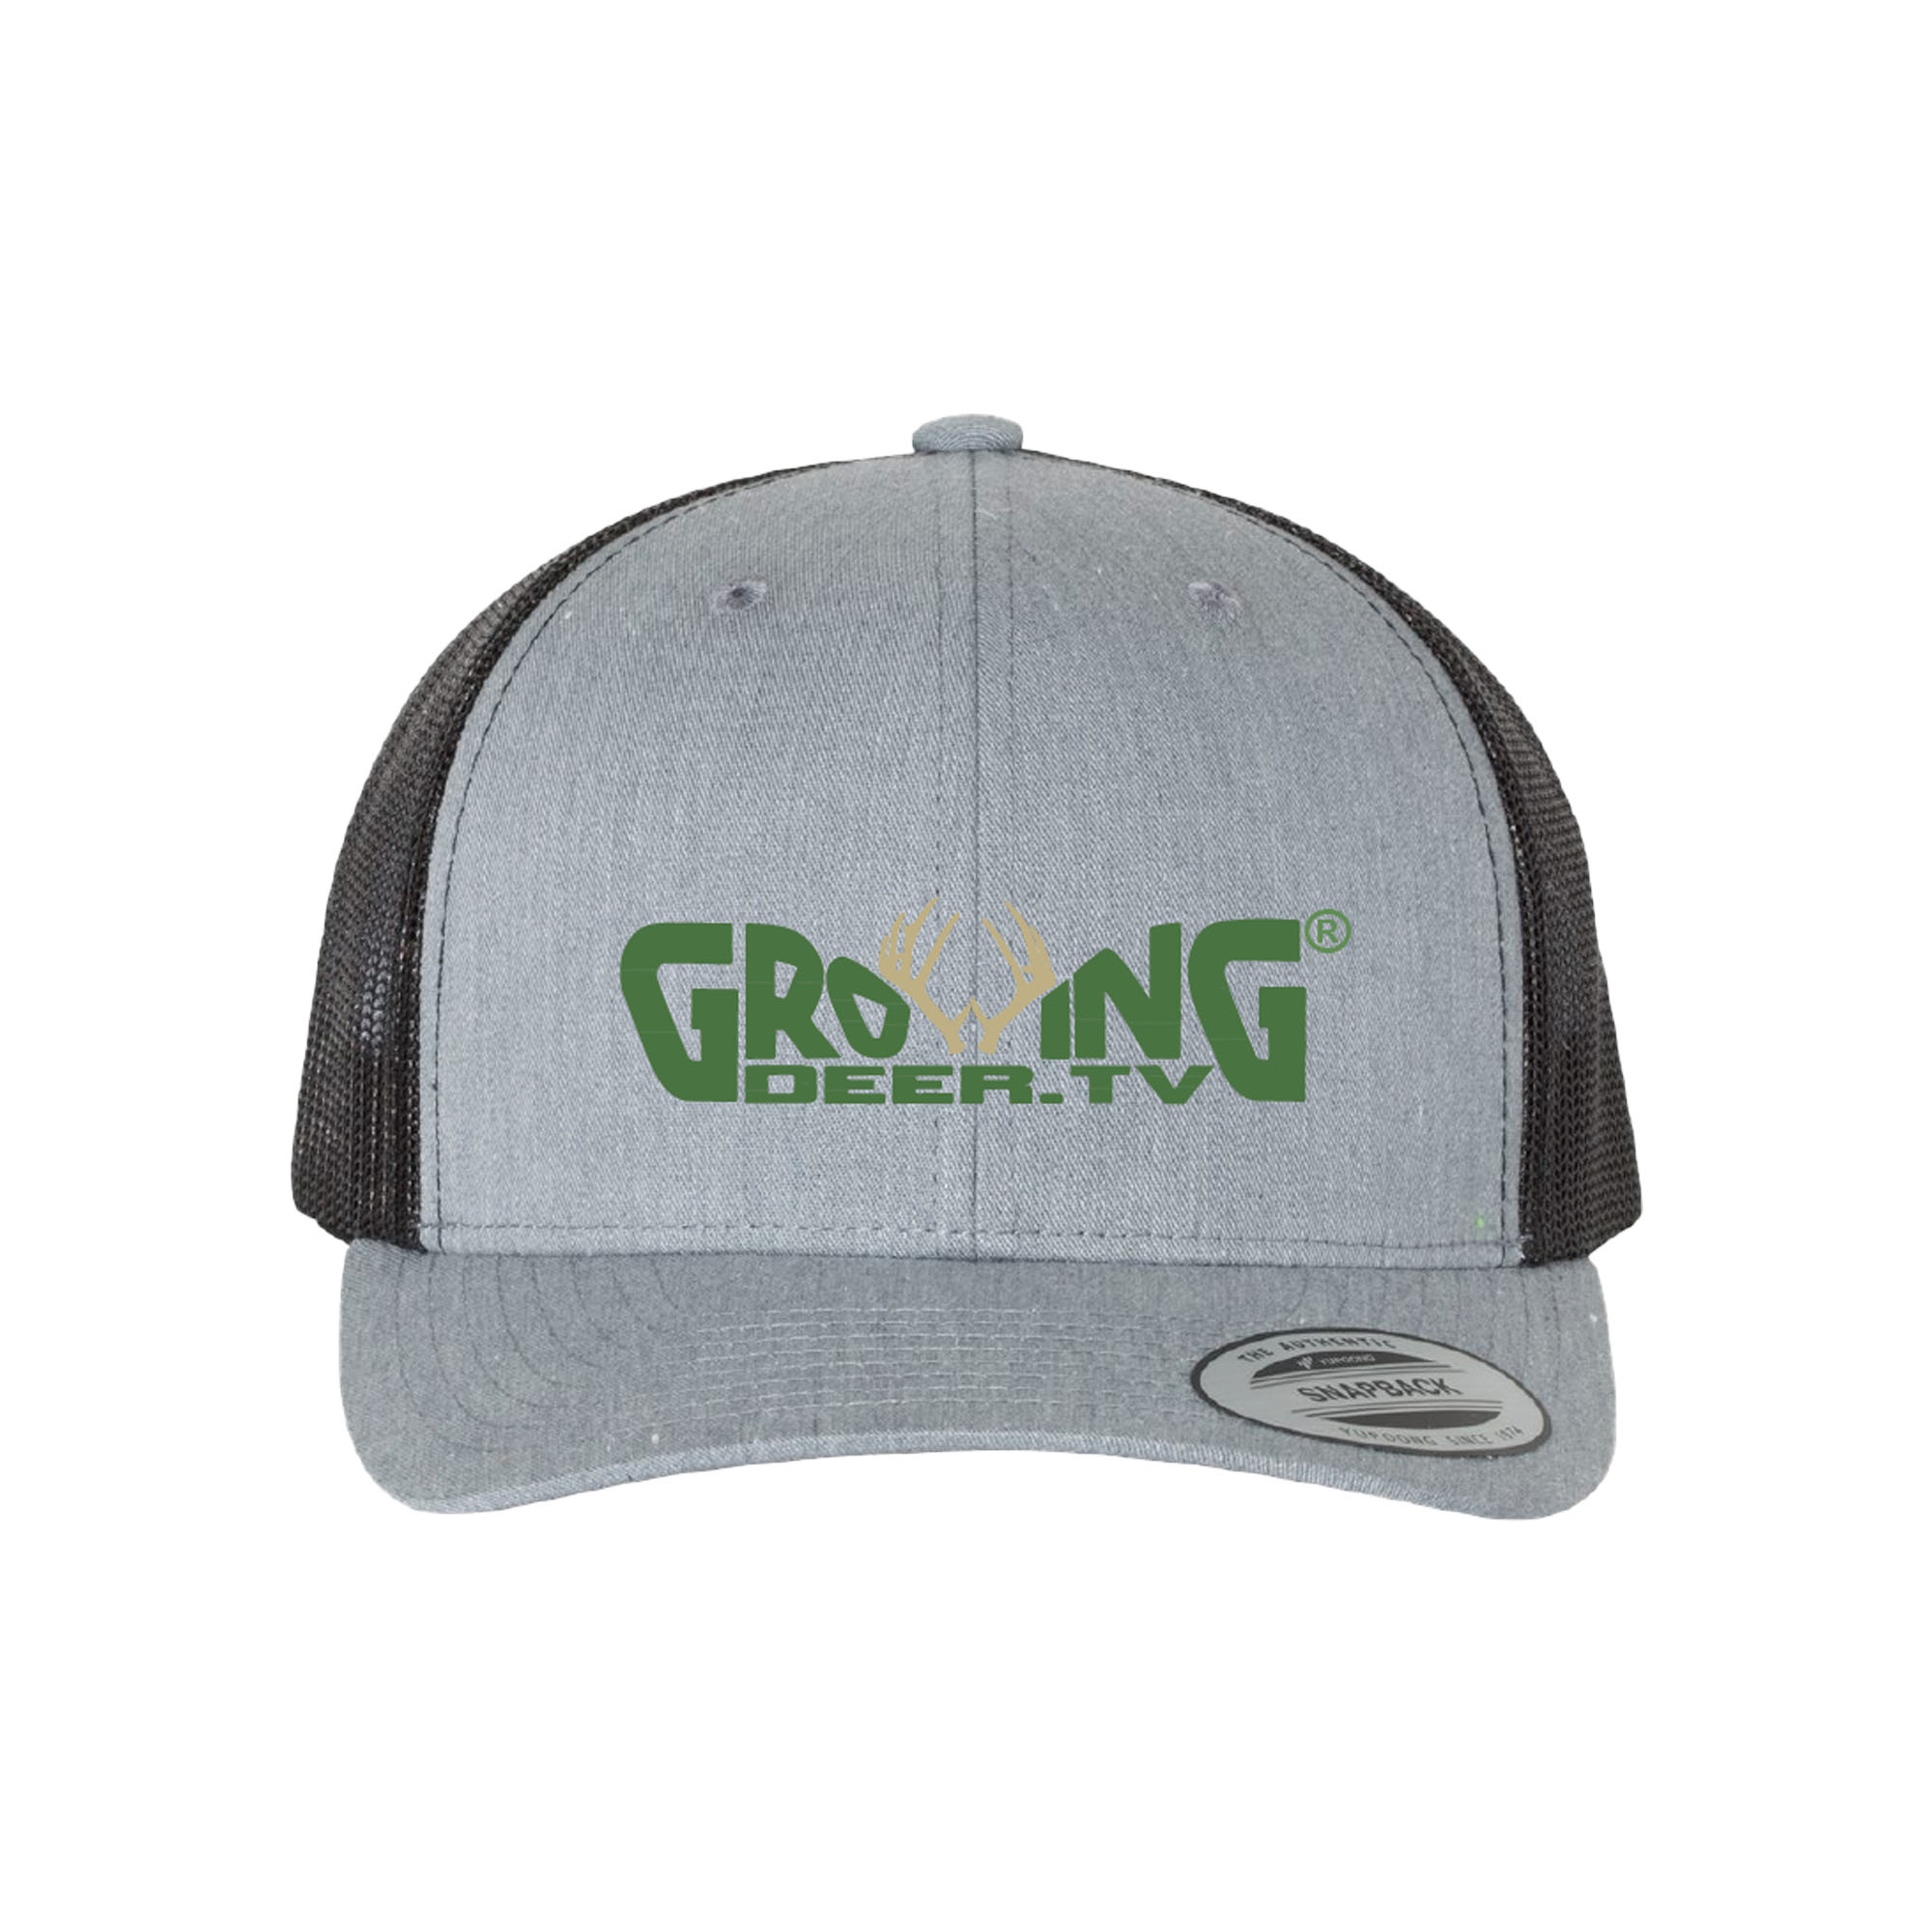 Heather Gray/Black Structured, mid-profile, six-panel Retro Trucker Cap with Permacurv Visor Matching undervisor, a mesh back with asnapback closure. It is made with 65/35 polyester/ cotton.